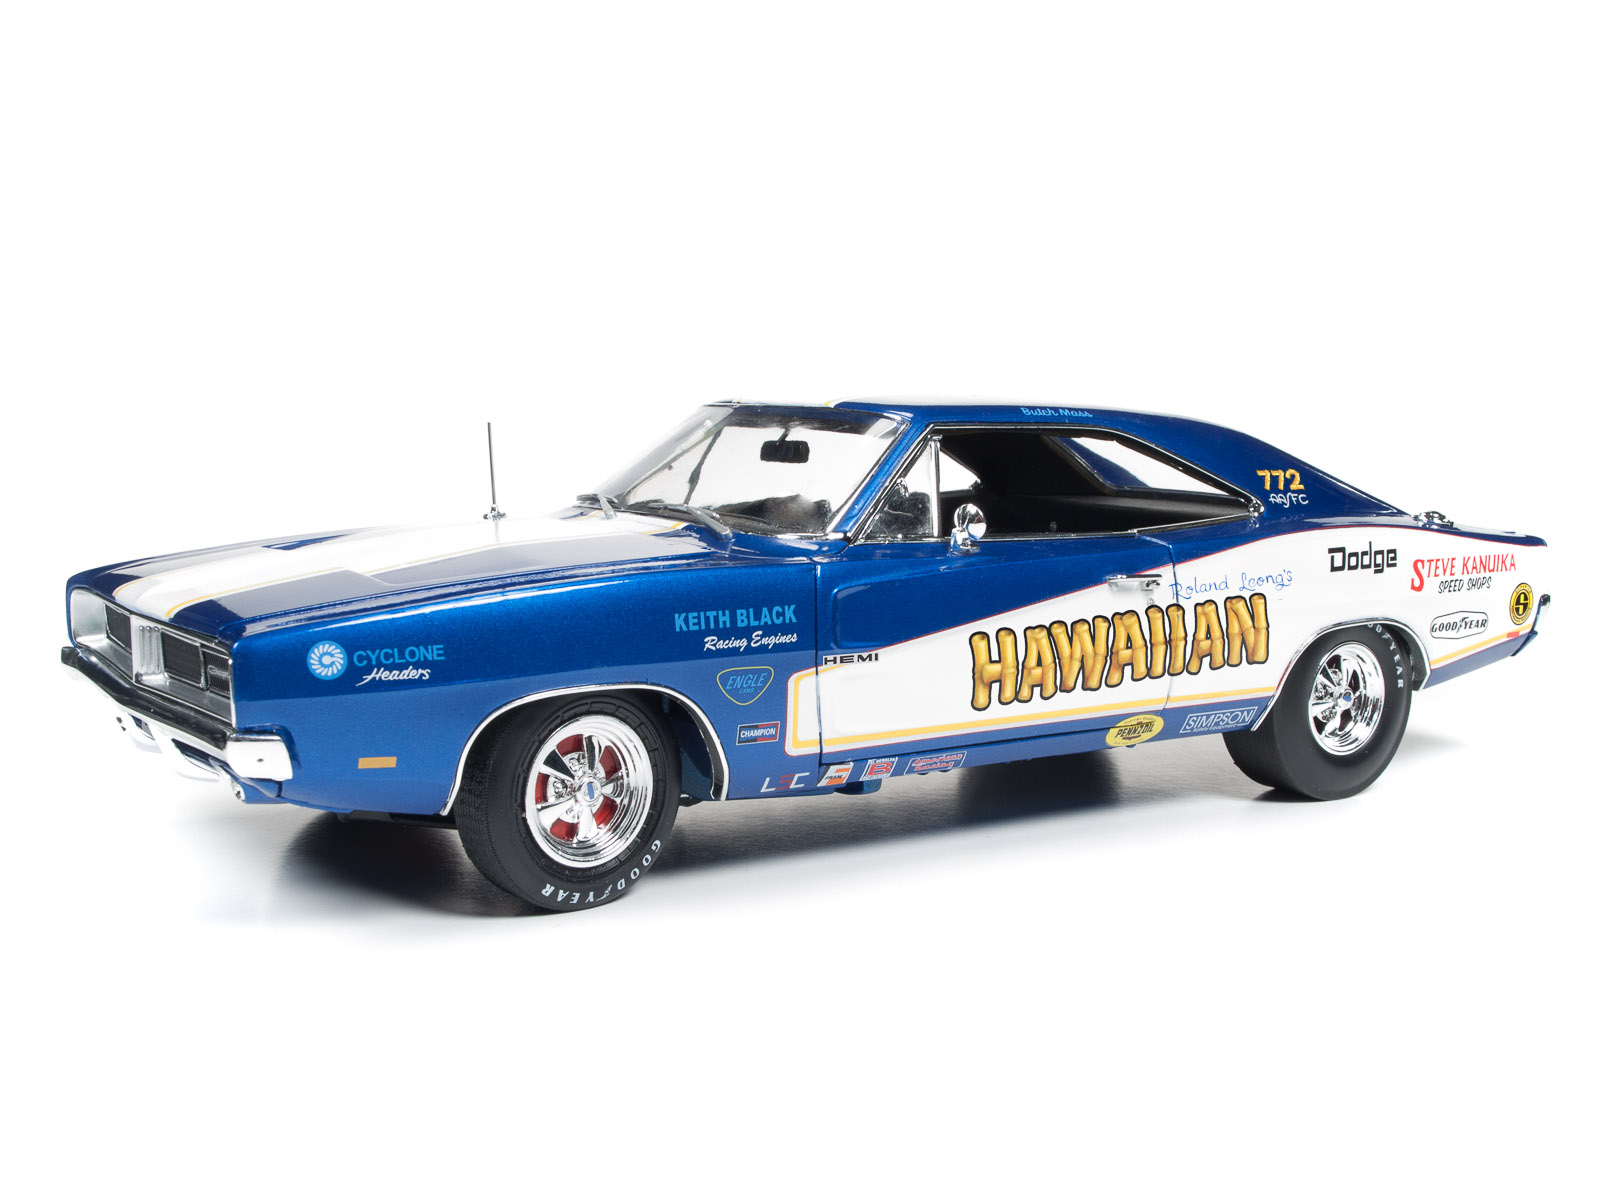 1969 Dodge Charger Hawaiian Funny Car Tribute Round2